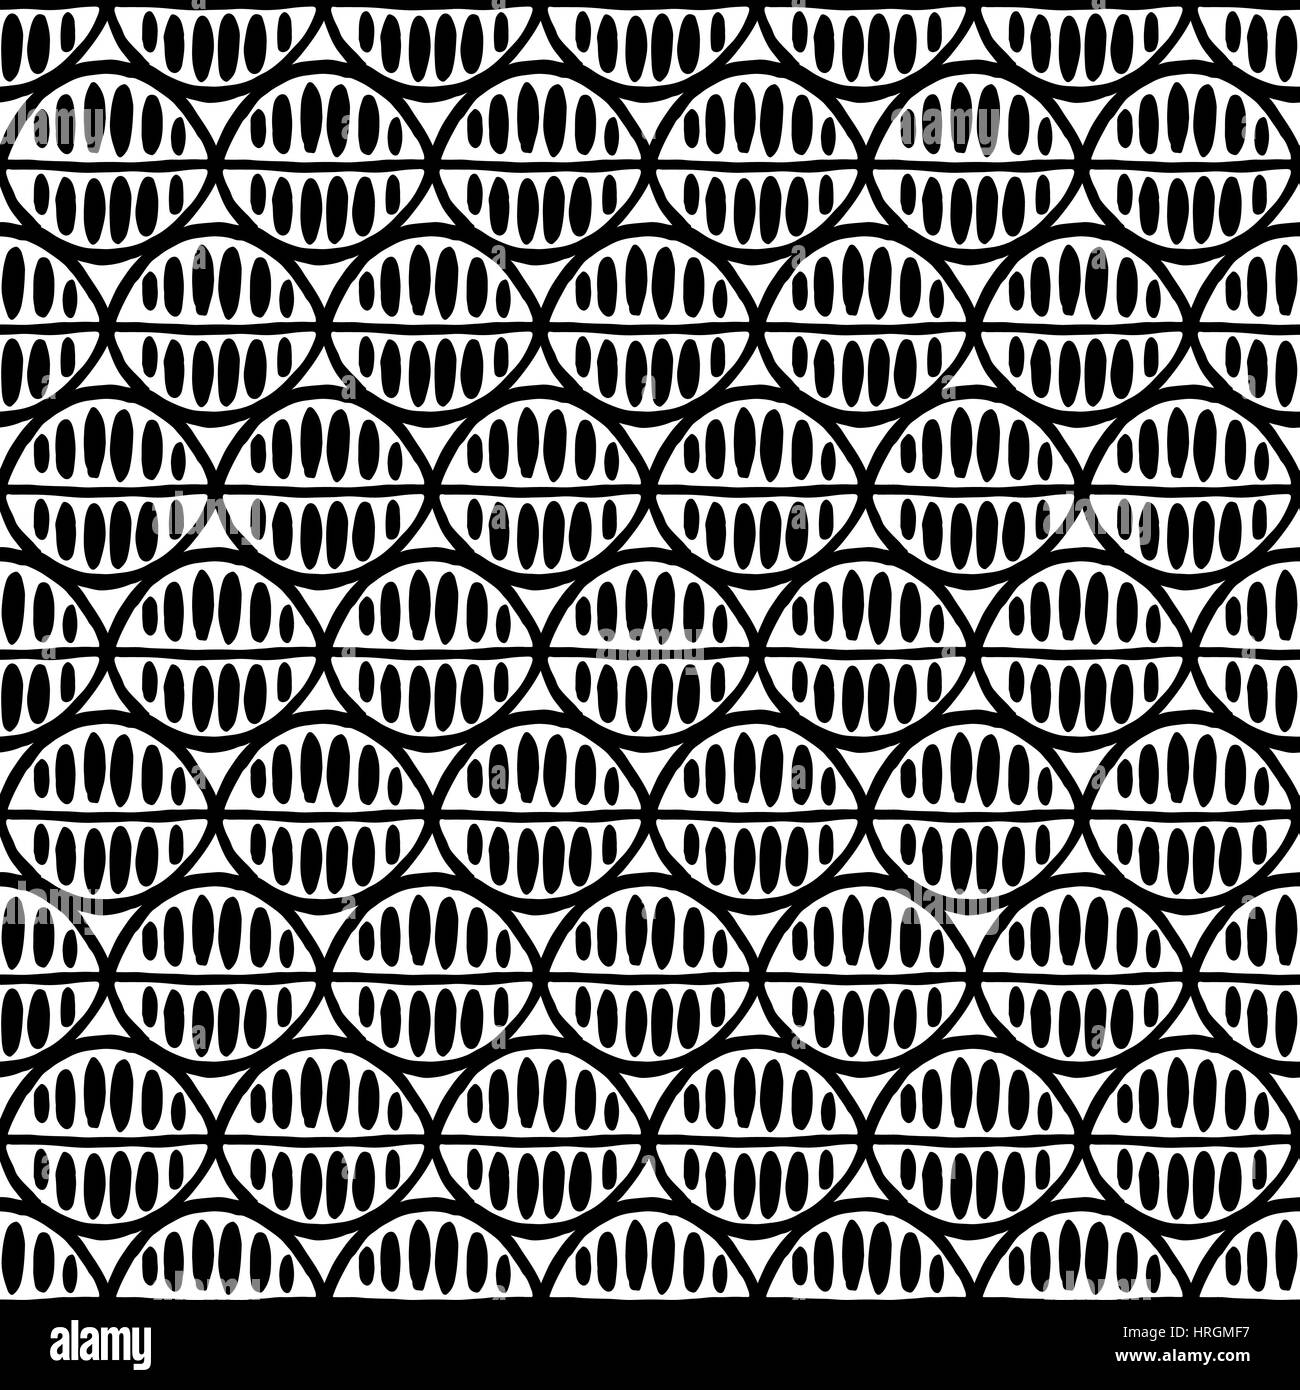 Seamless floral pattern with primitive leaves. Tribal ethnic background, simplistic geometry, black and white. Textile - Stock Image